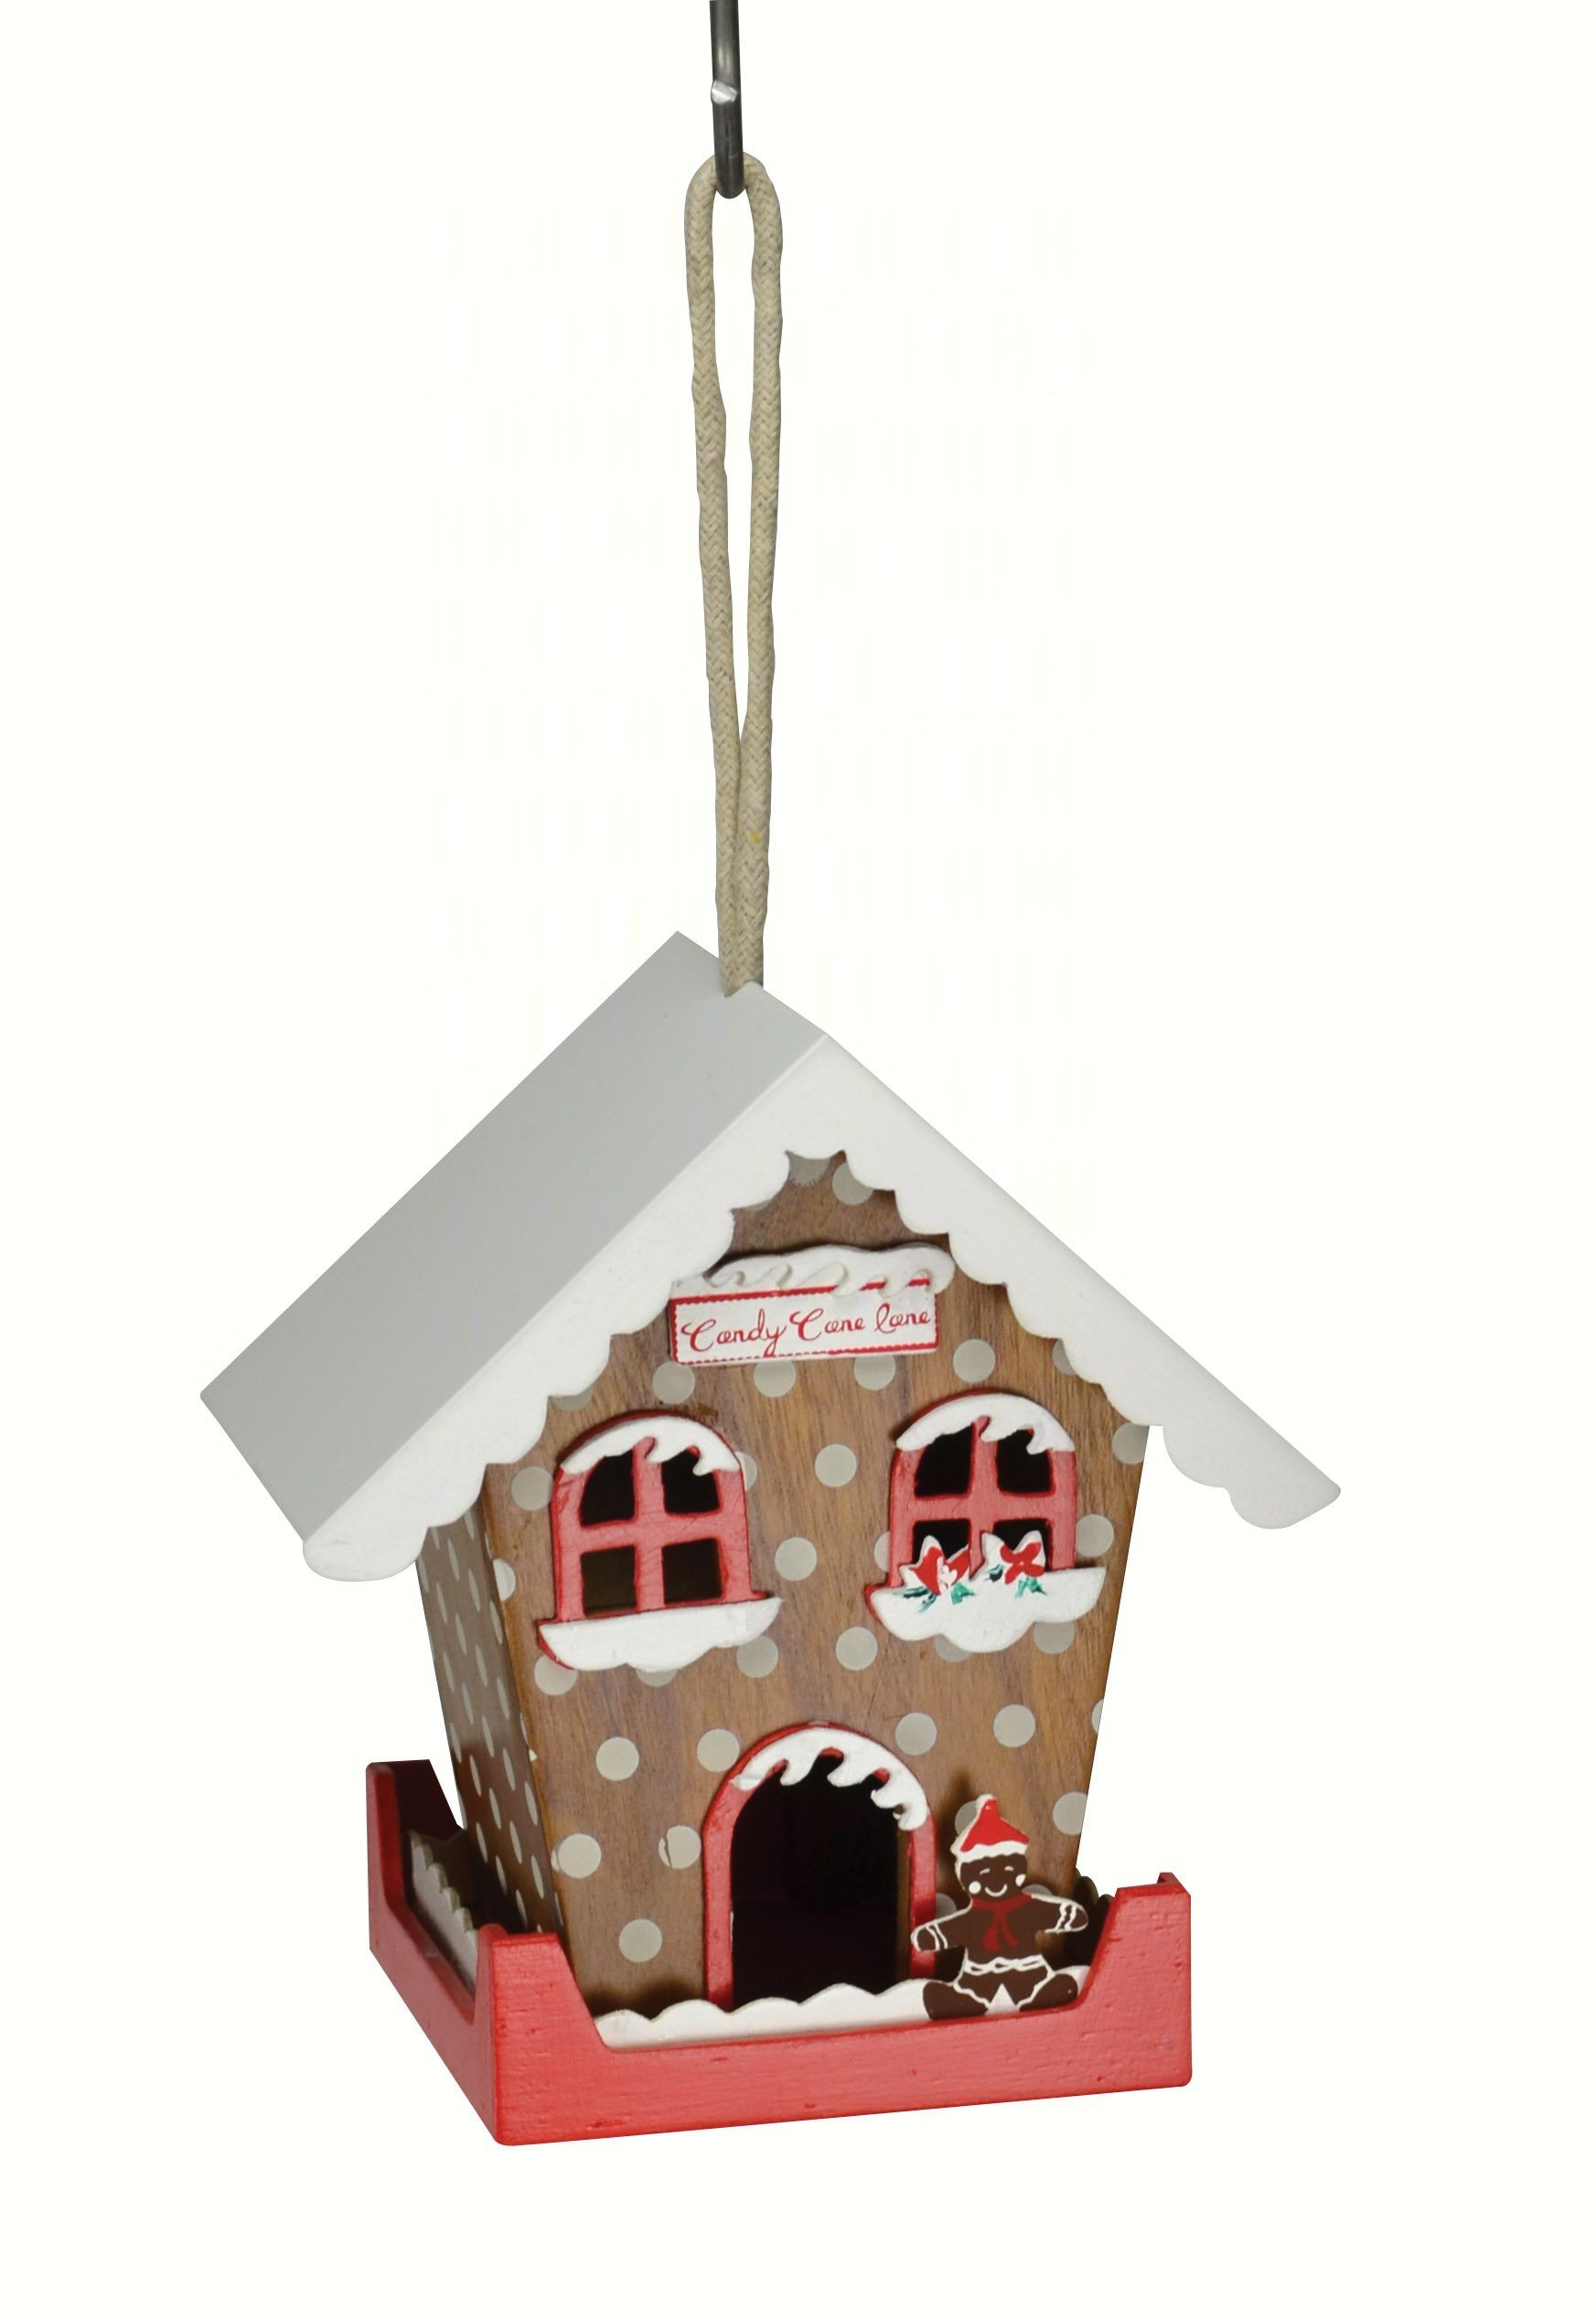 Candy Cane Lane Birdhouse Bird houses, Candy cane